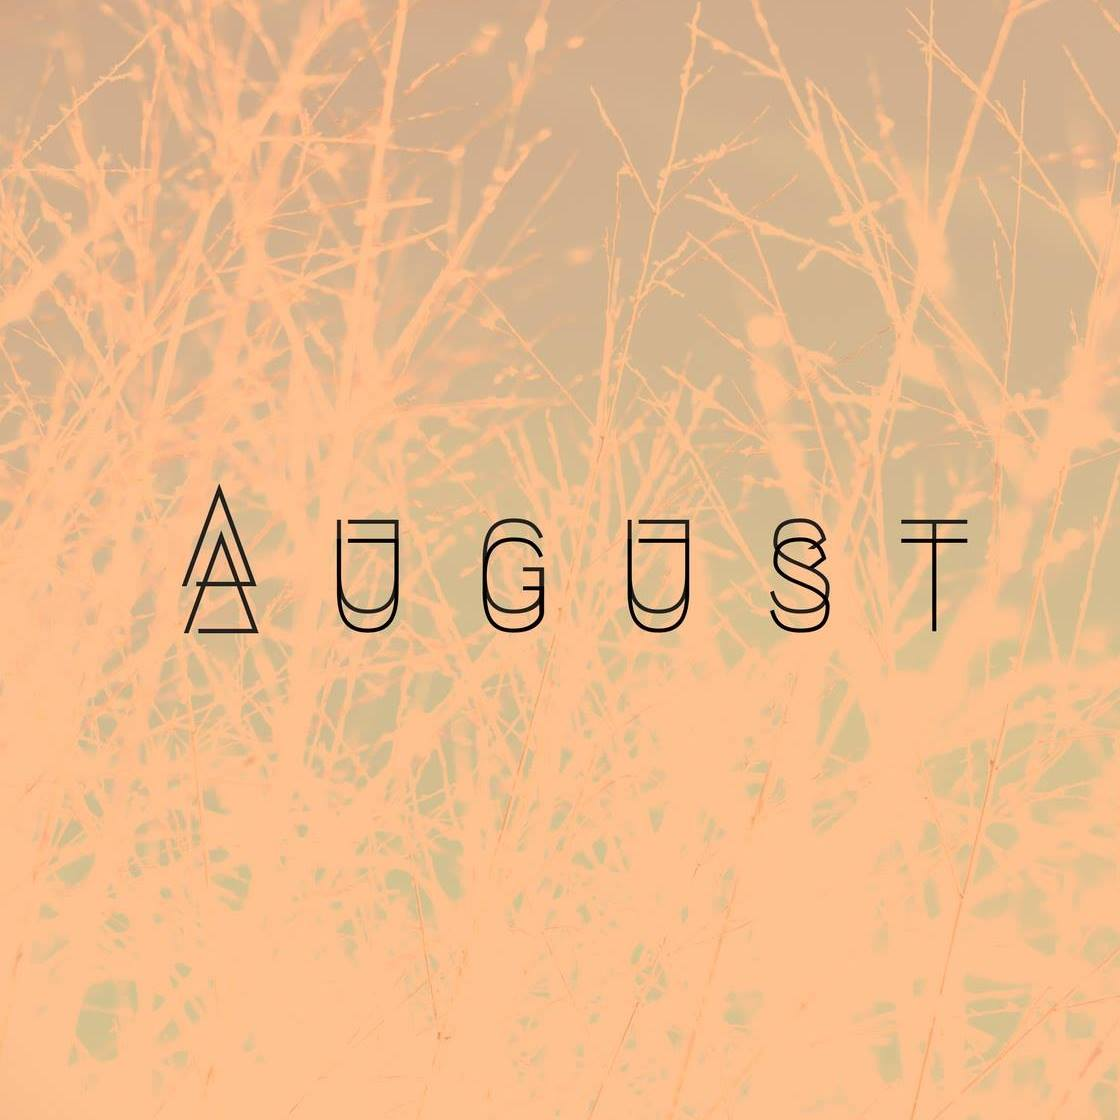 Copy of August